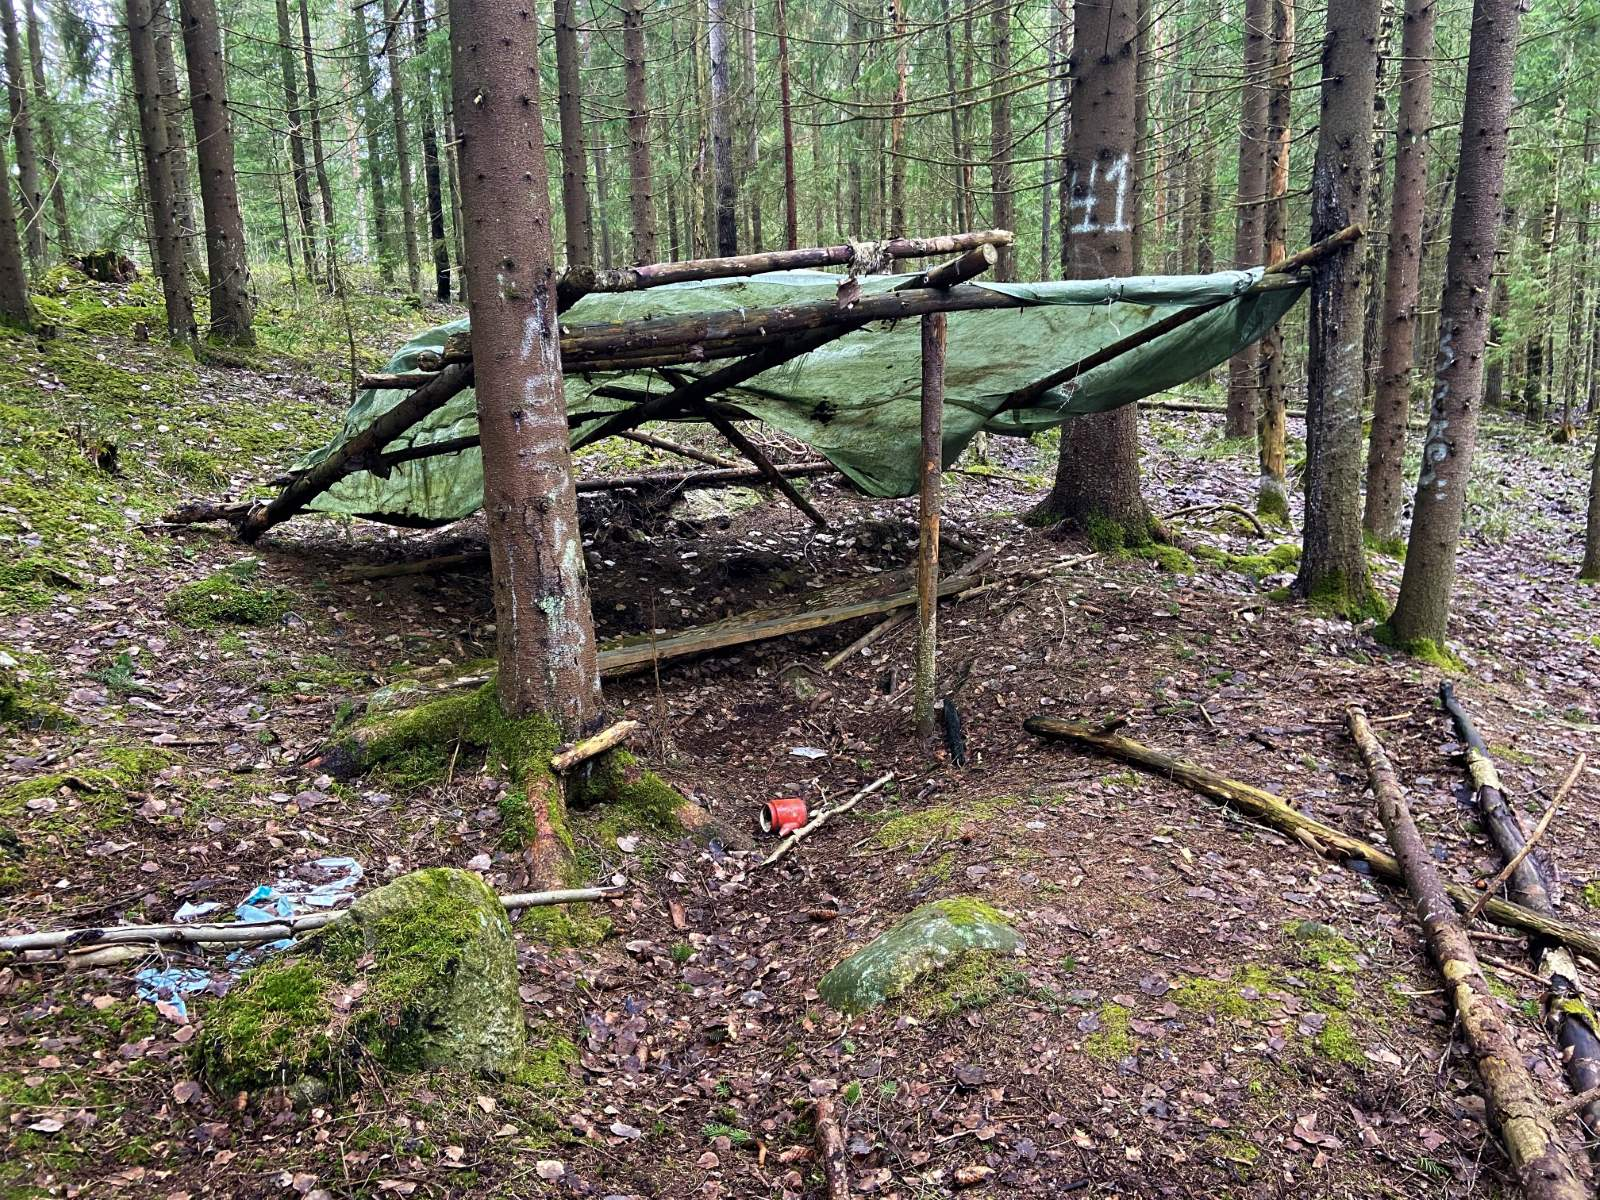 A makeshift green tarp tent in the woods with the number 41 painted a tree behind it